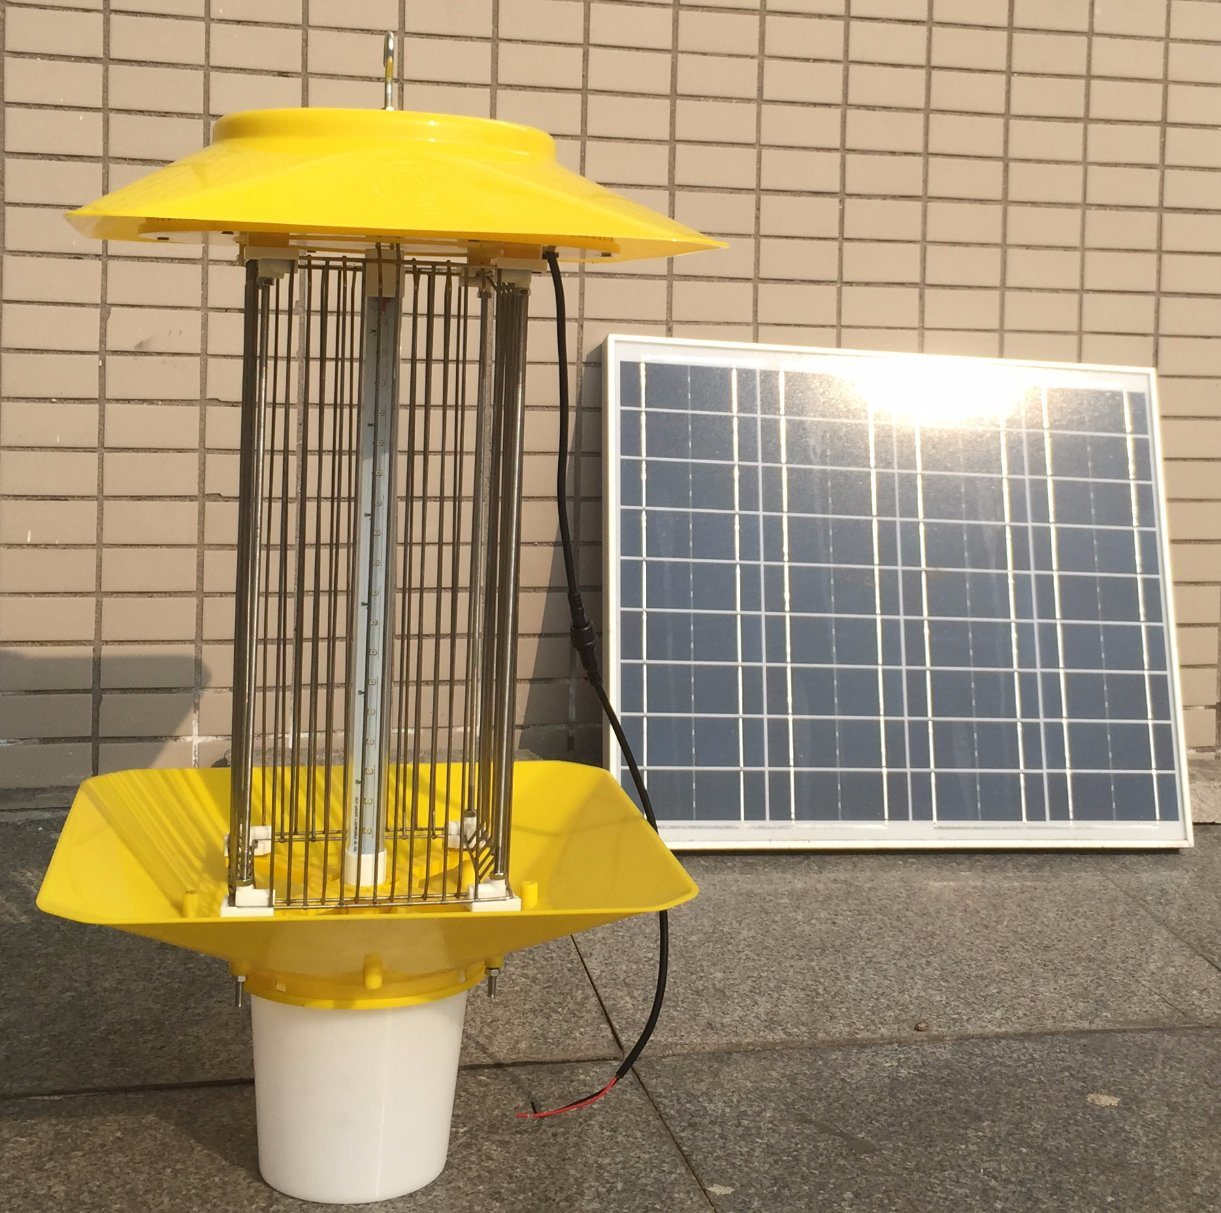 Solar Powered Mosquito/Insect Killer Lamp for Farm Pest Control